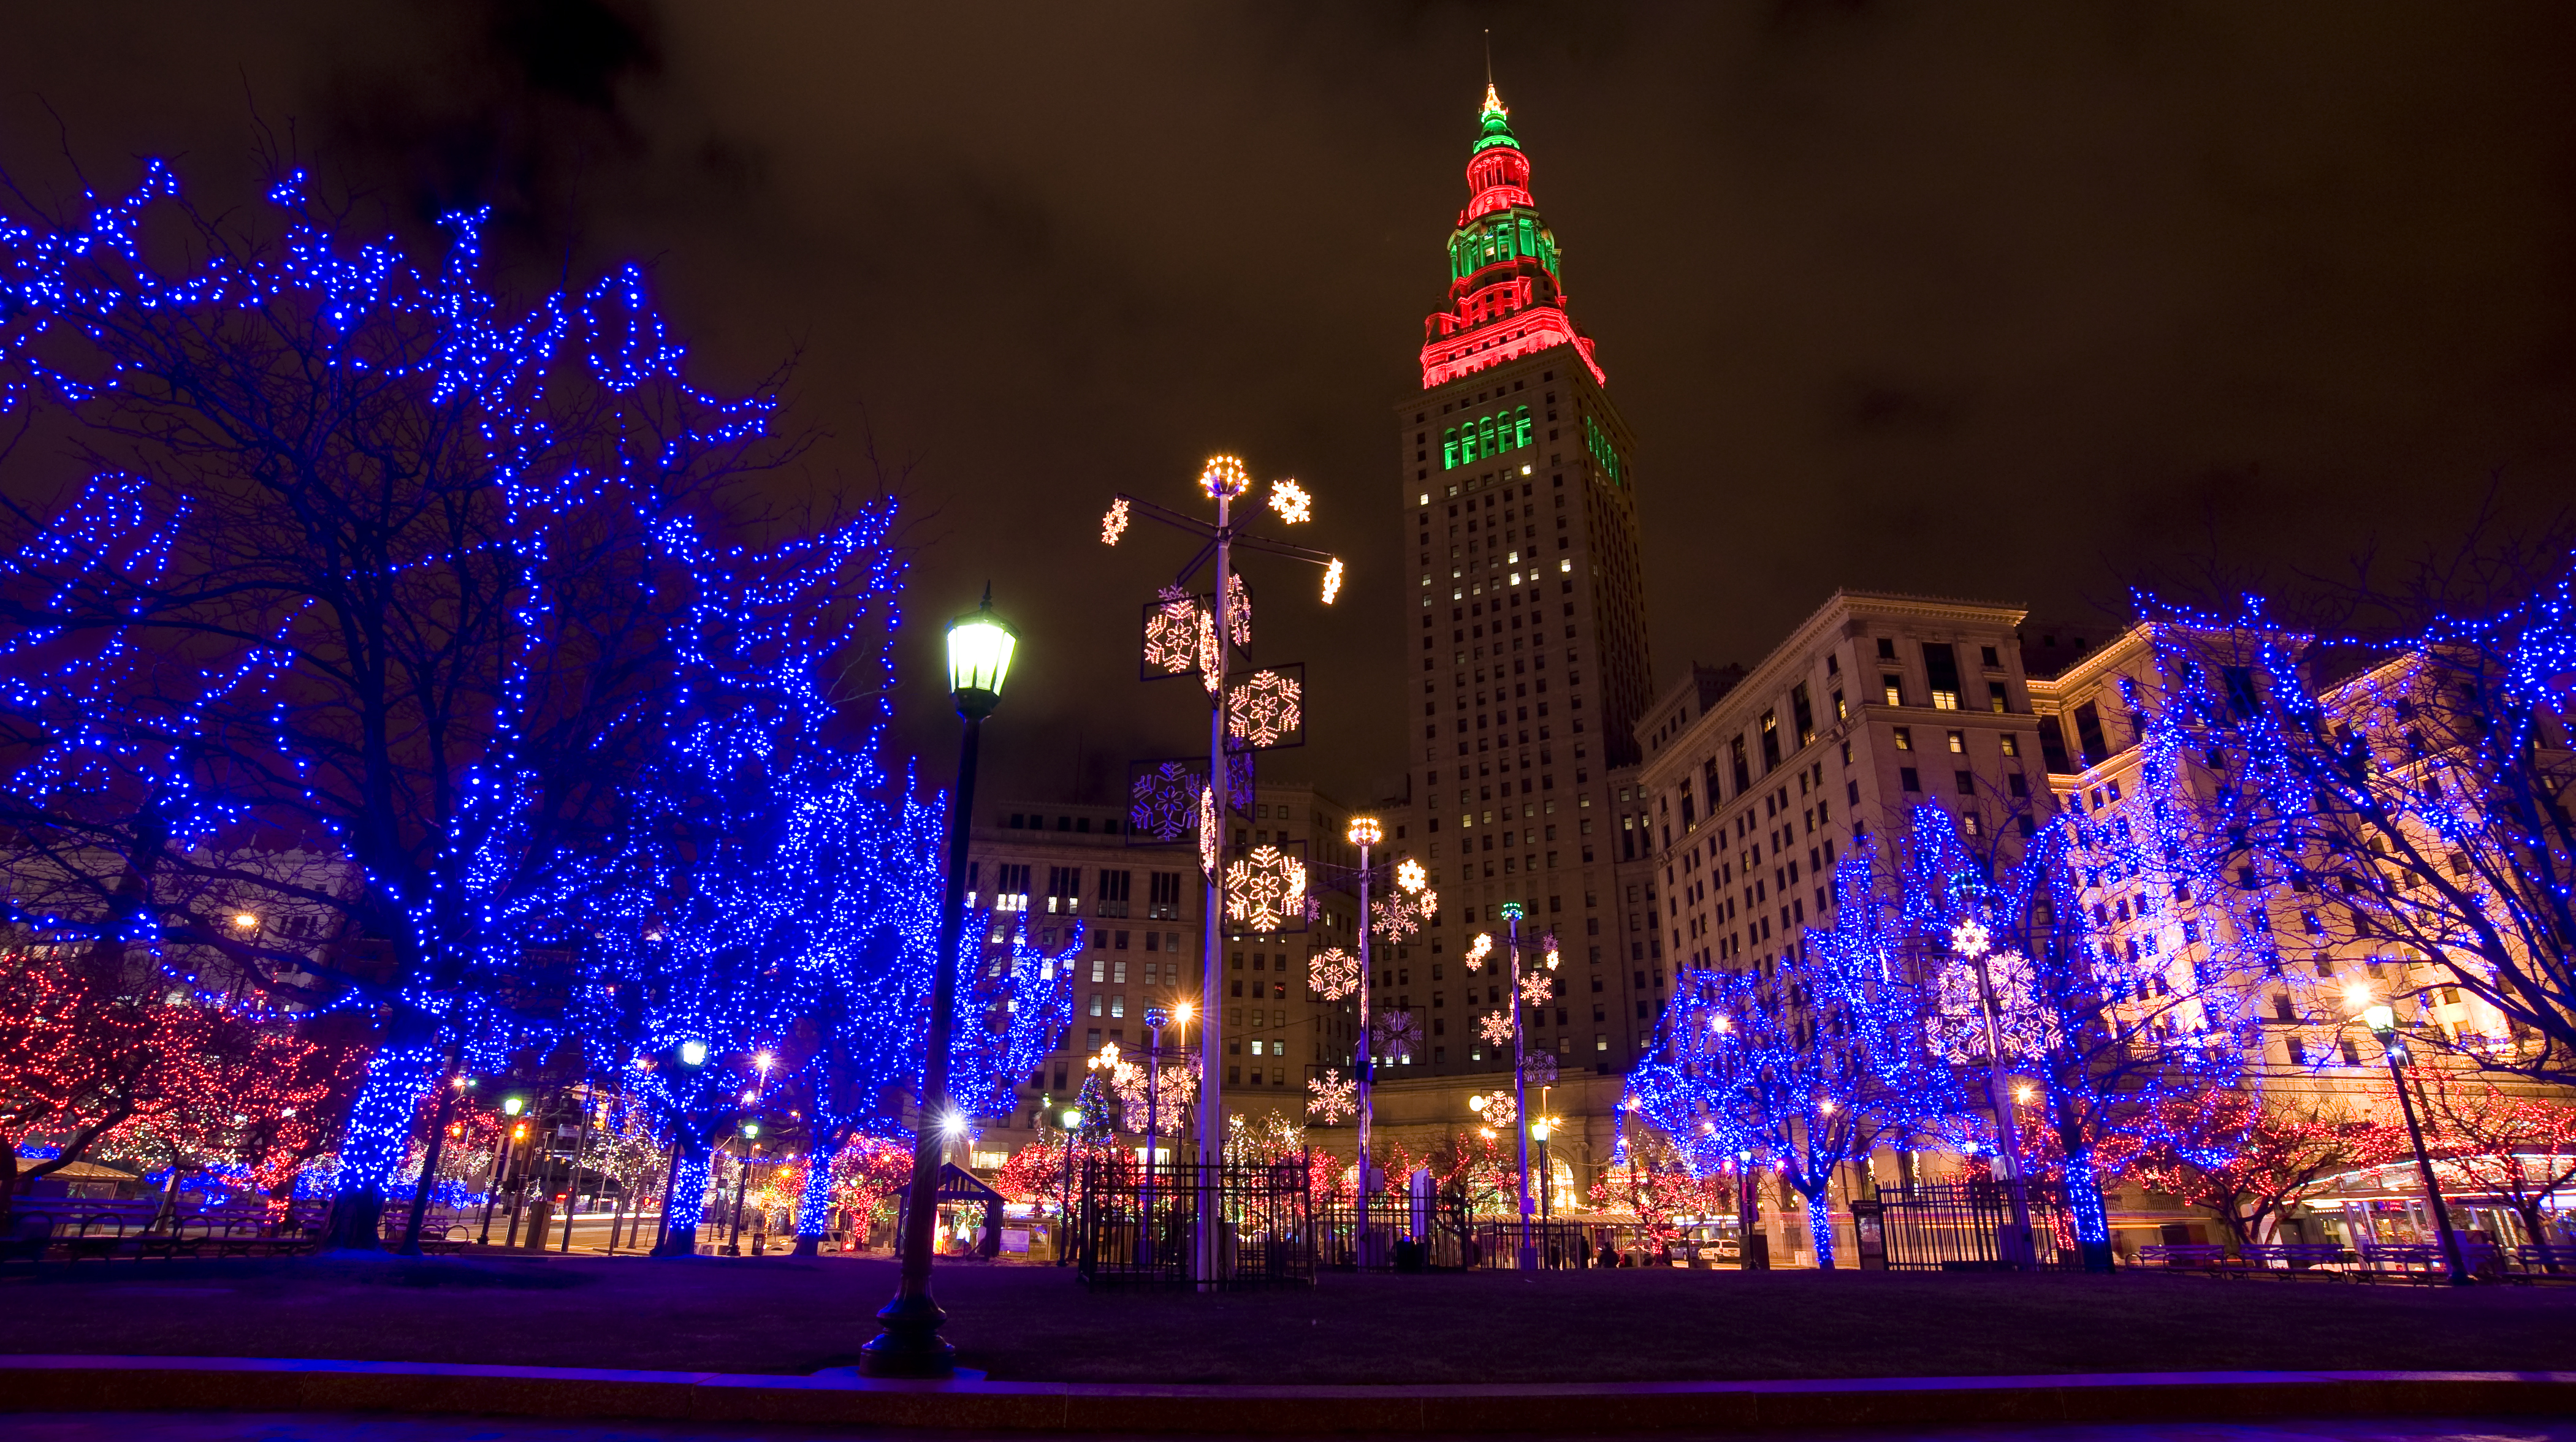 Photos of holiday lights on Public Square in downtown Cleveland.